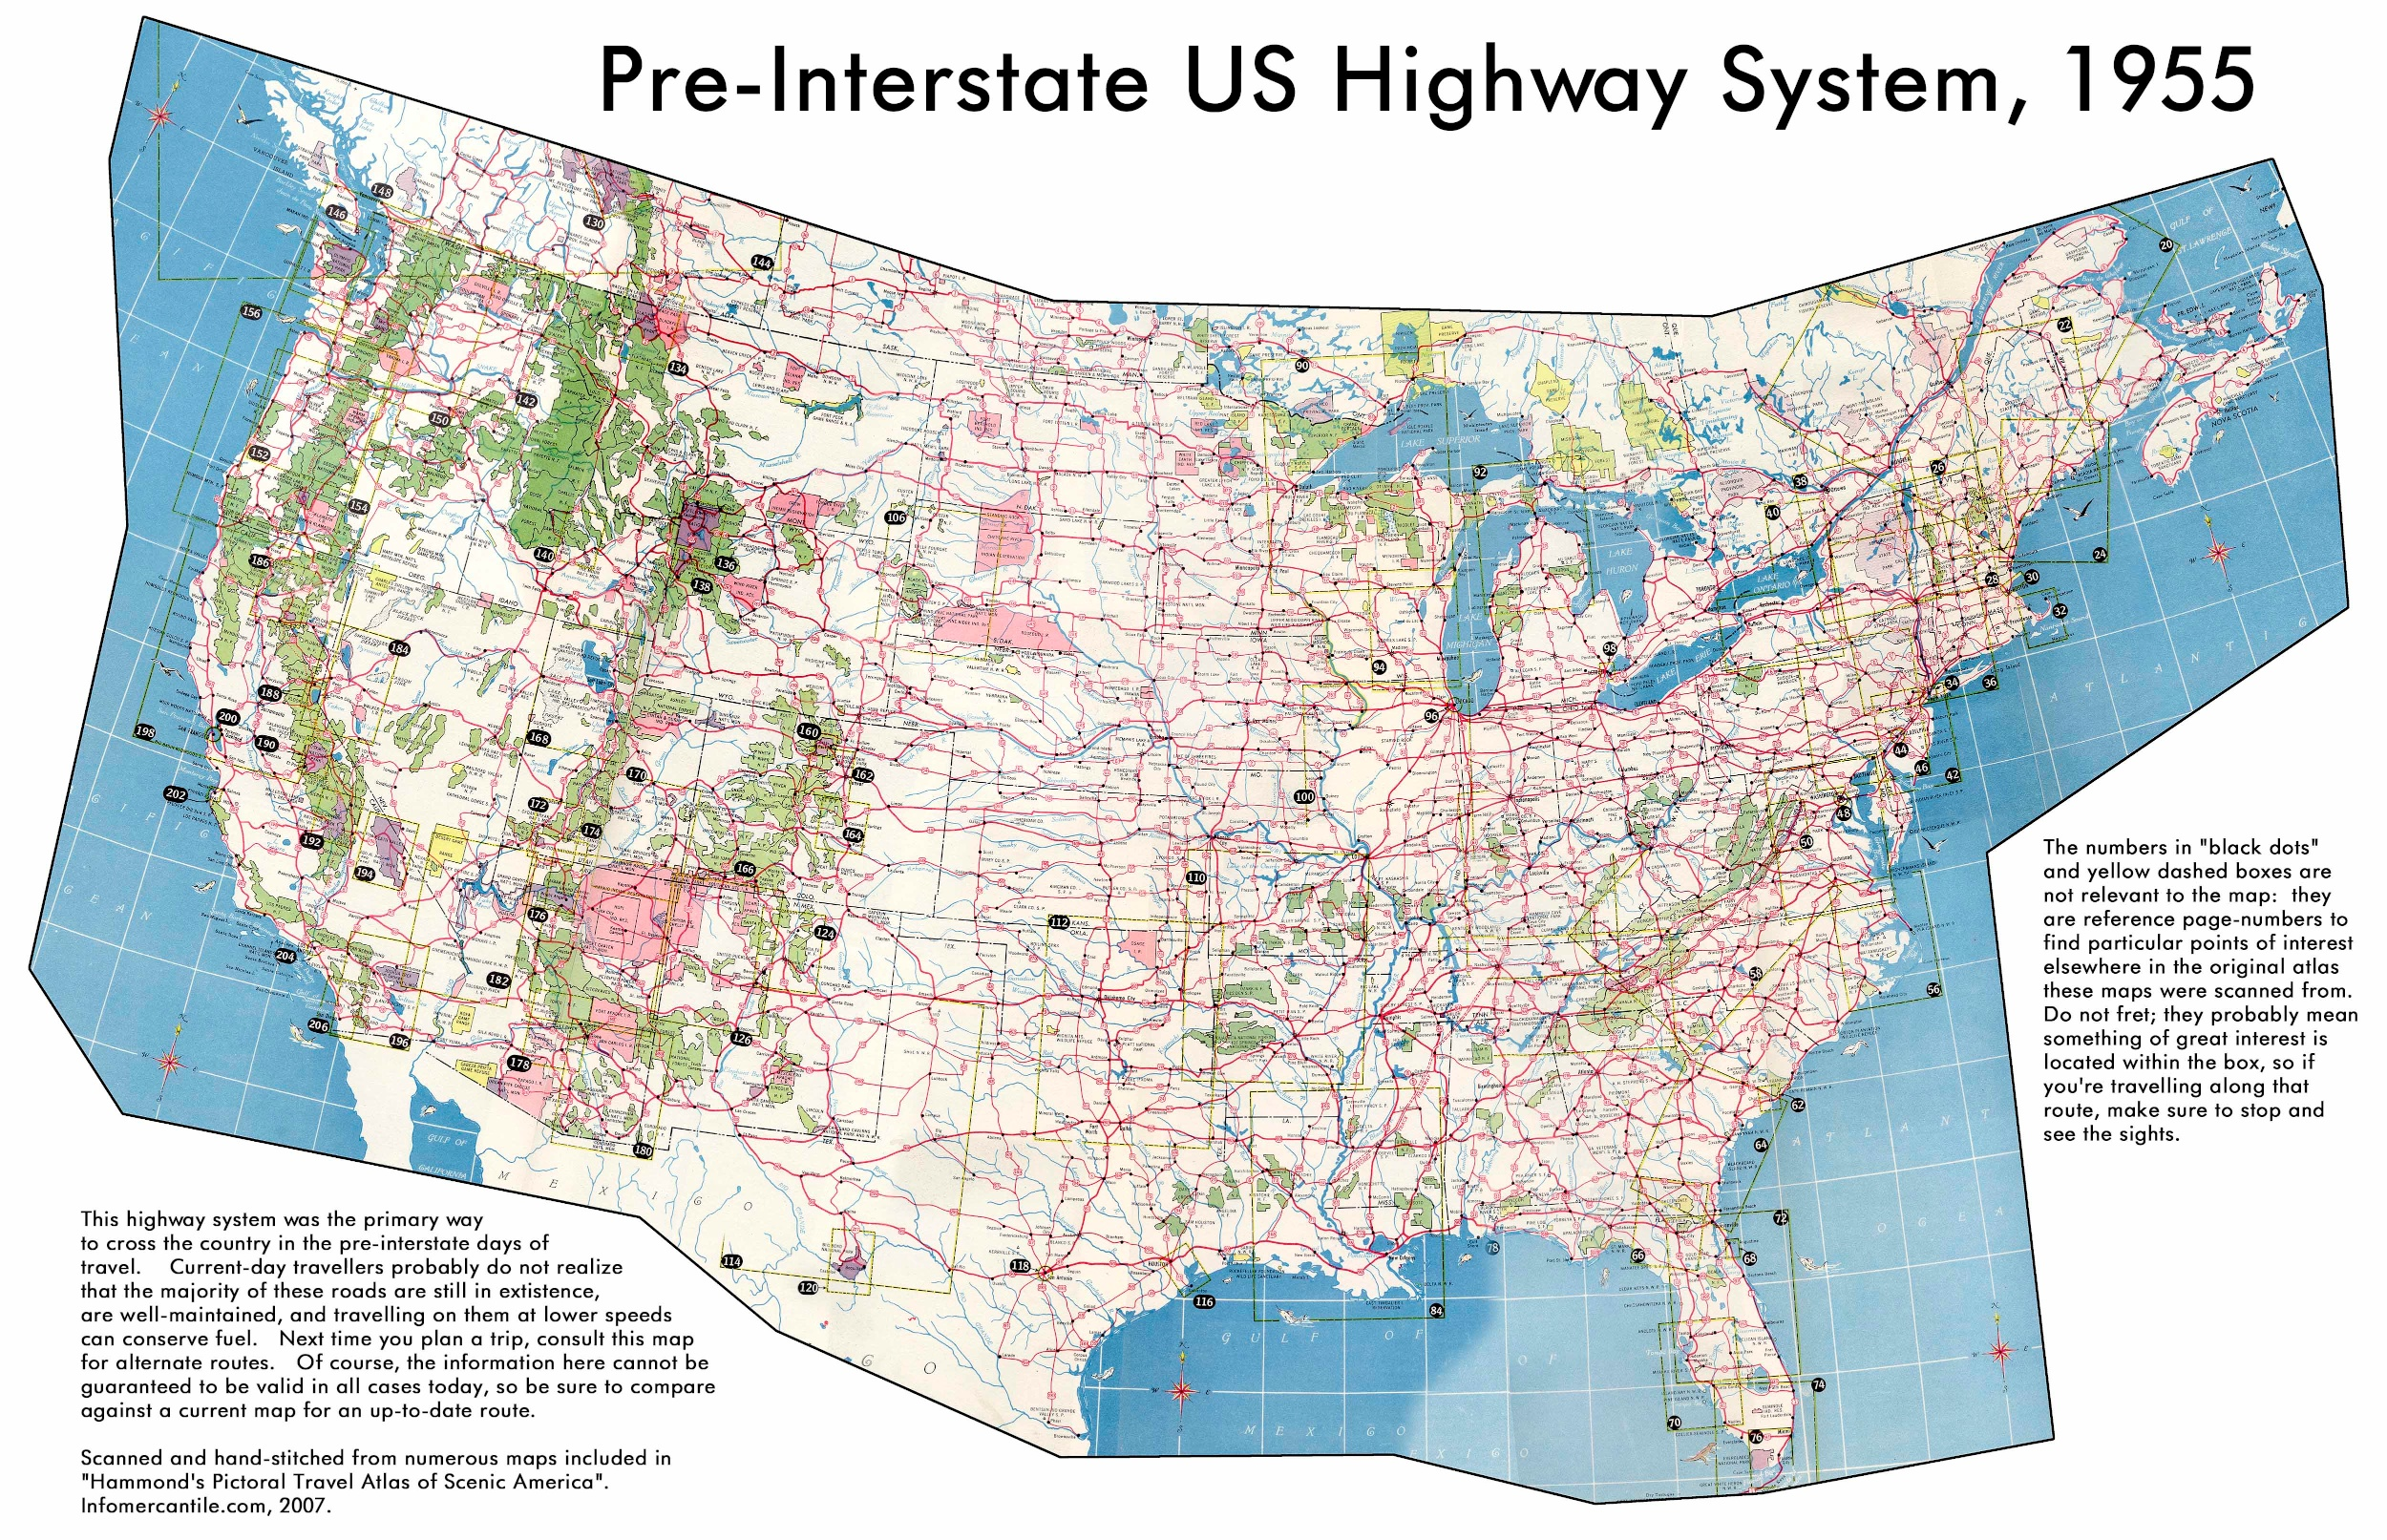 SFGAmWorldcom Park Maps California Great America CGA Discussion - Usa map with roads and cities